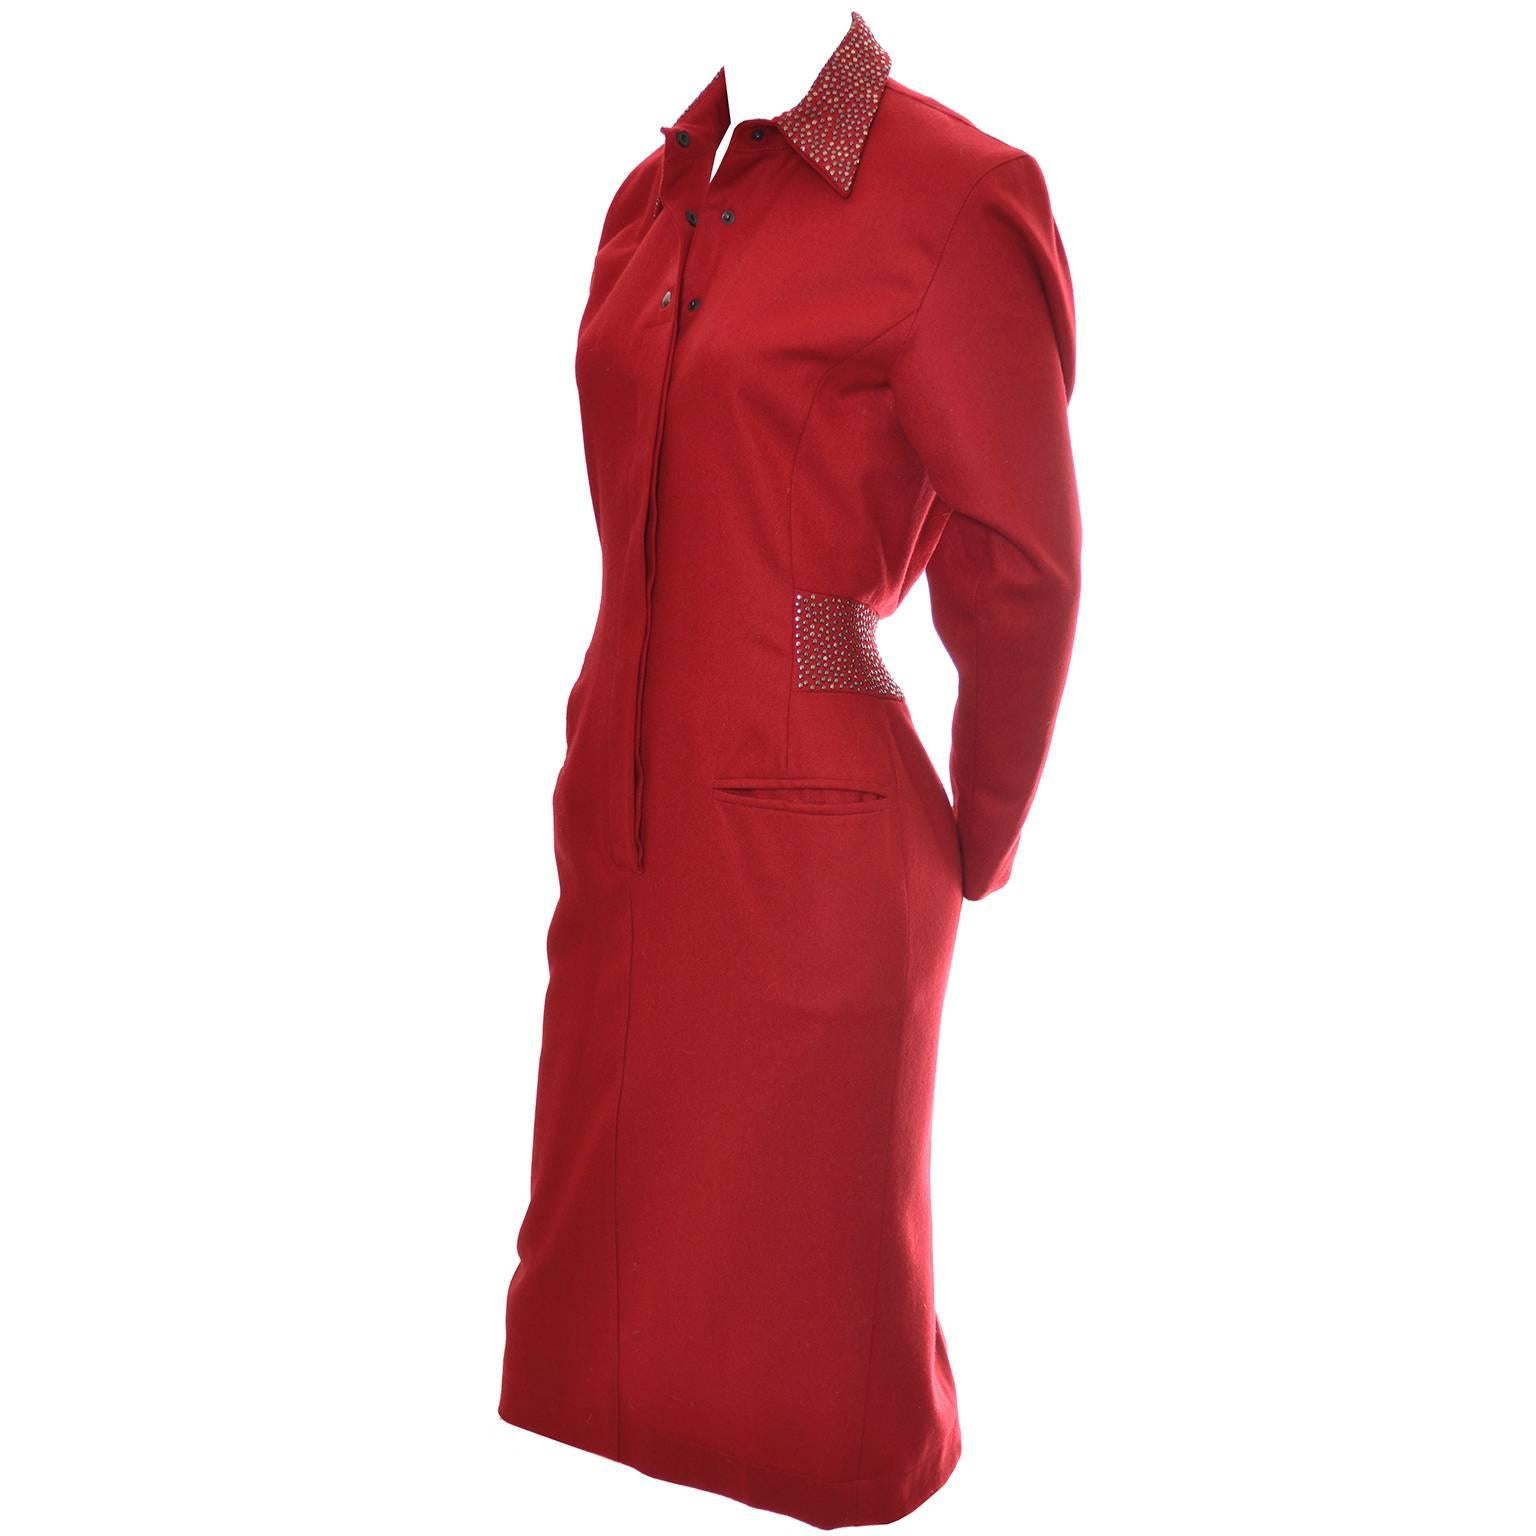 1980s Claude Montana Studded Red Wool Vintage Dress With Kick Pleat